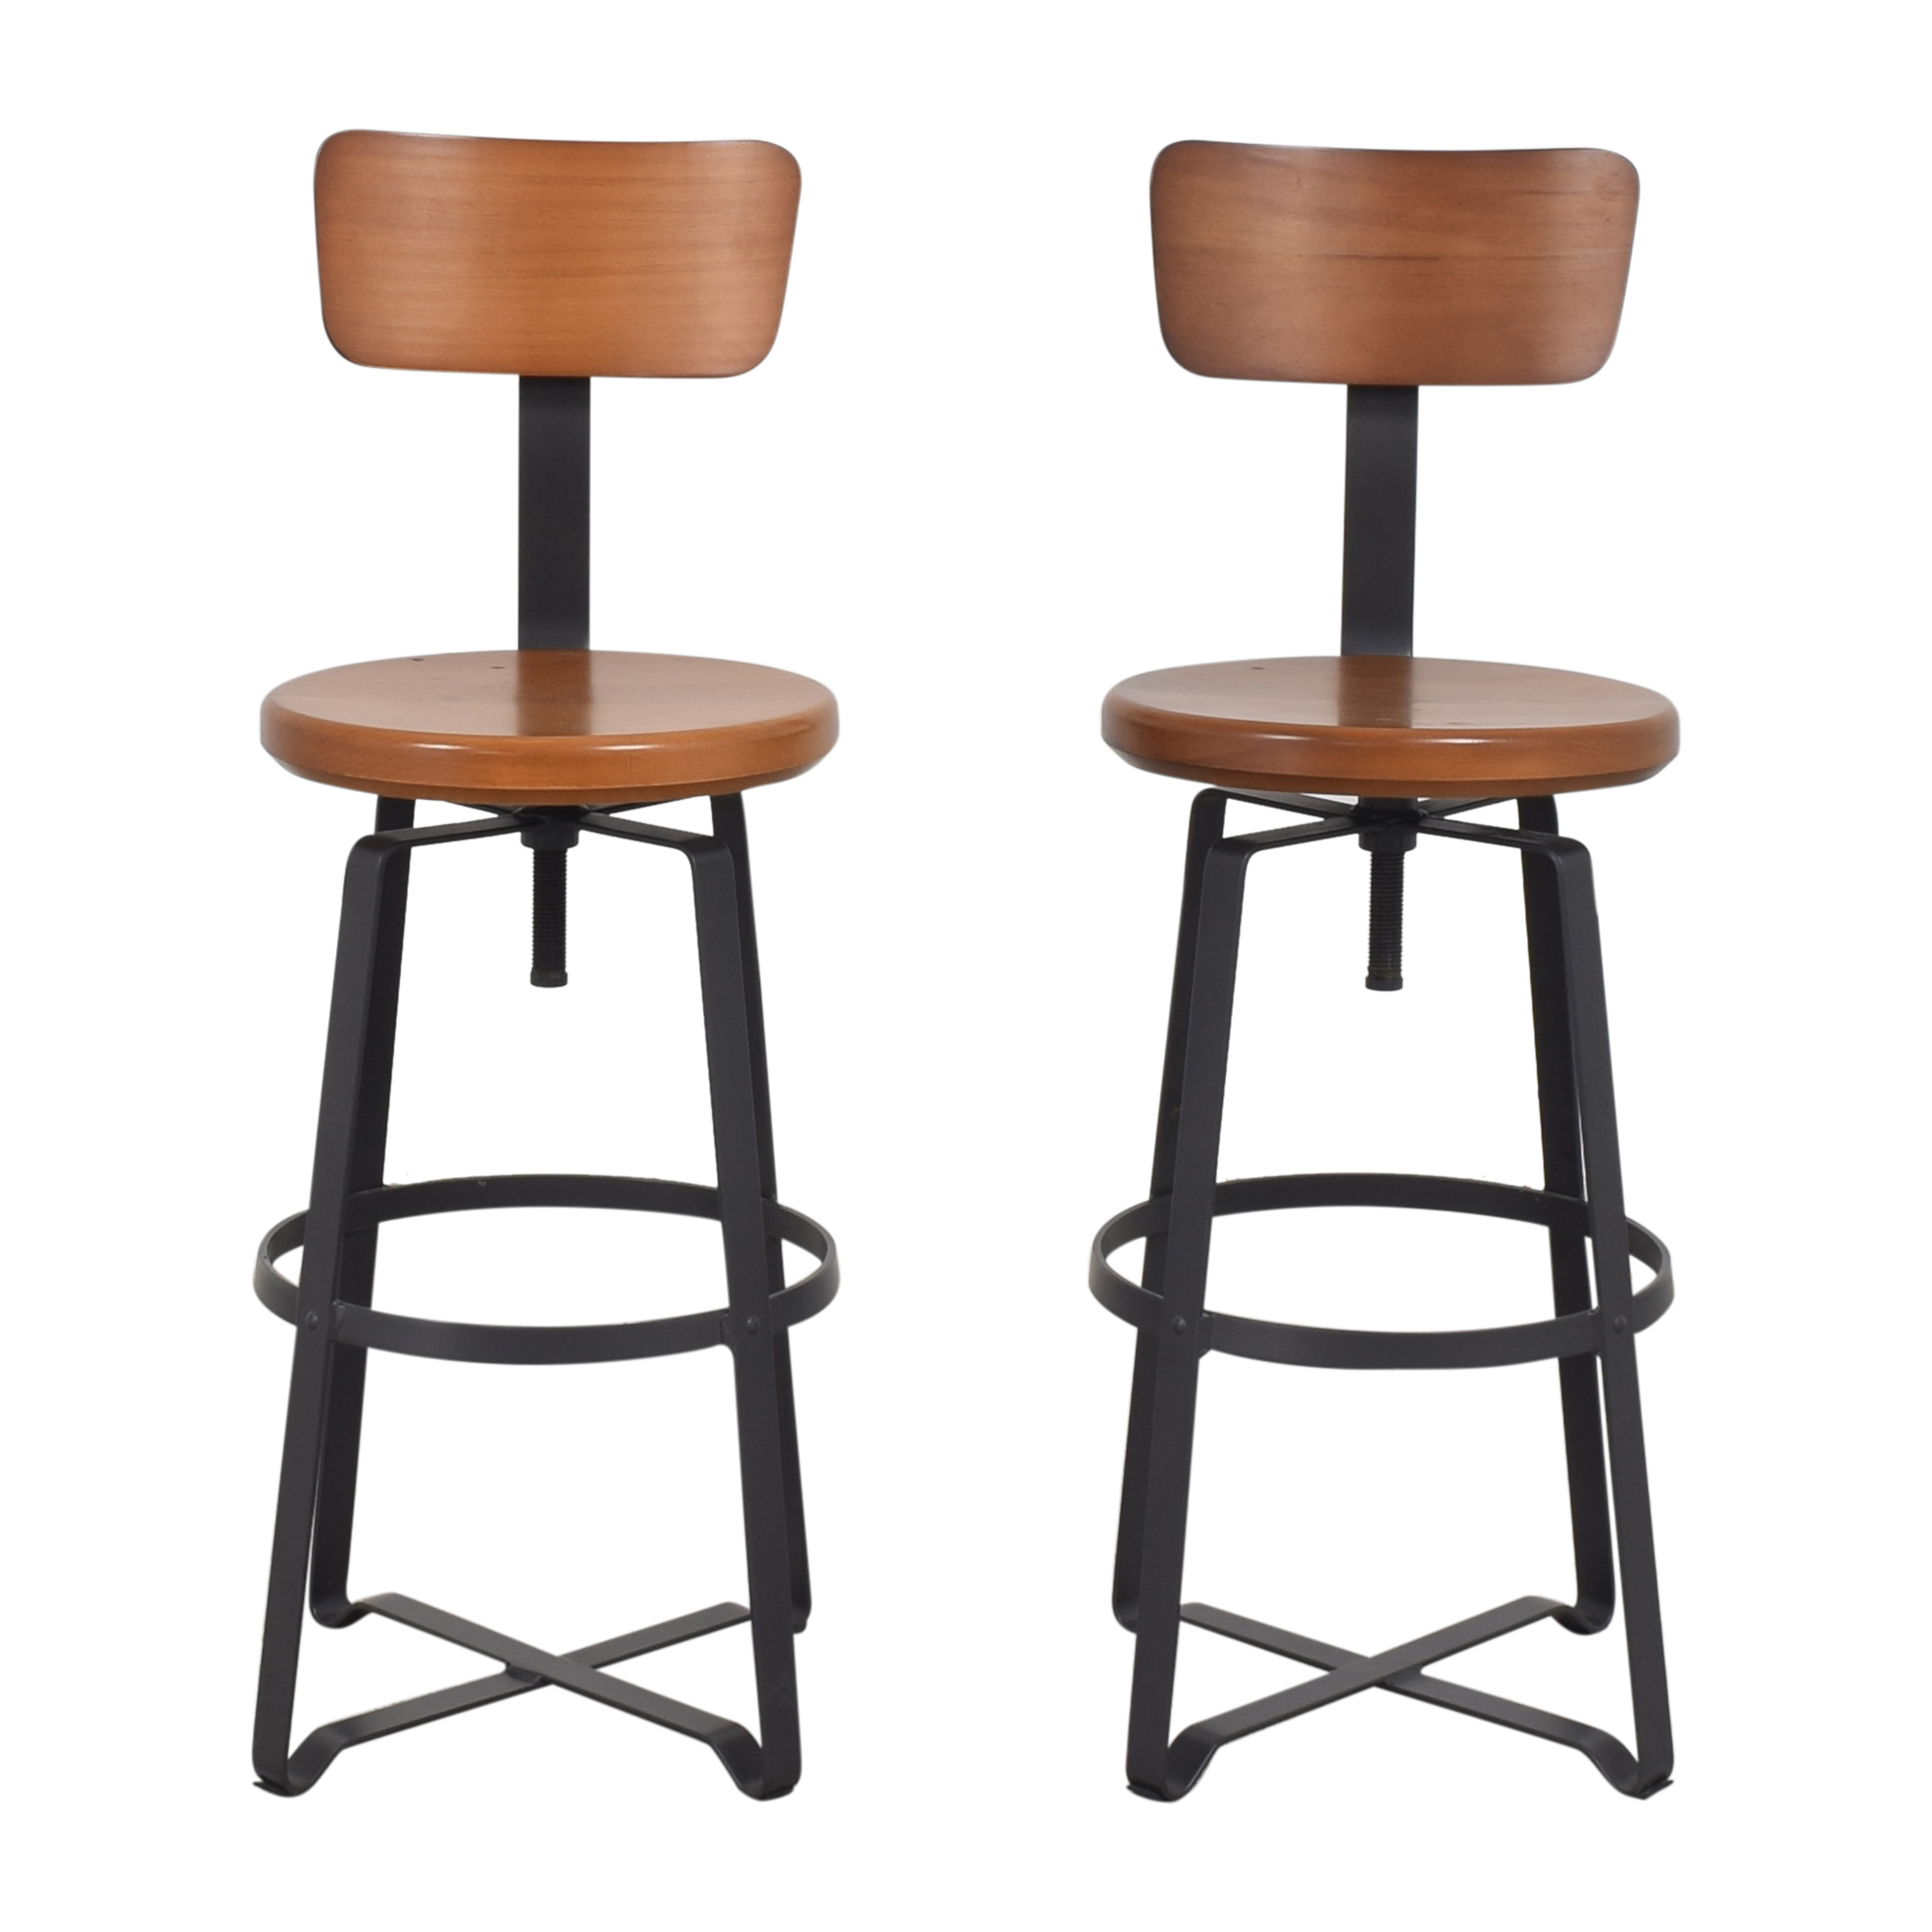 West Elm West Elm Adjustable Industrial Swivel Stools Stools